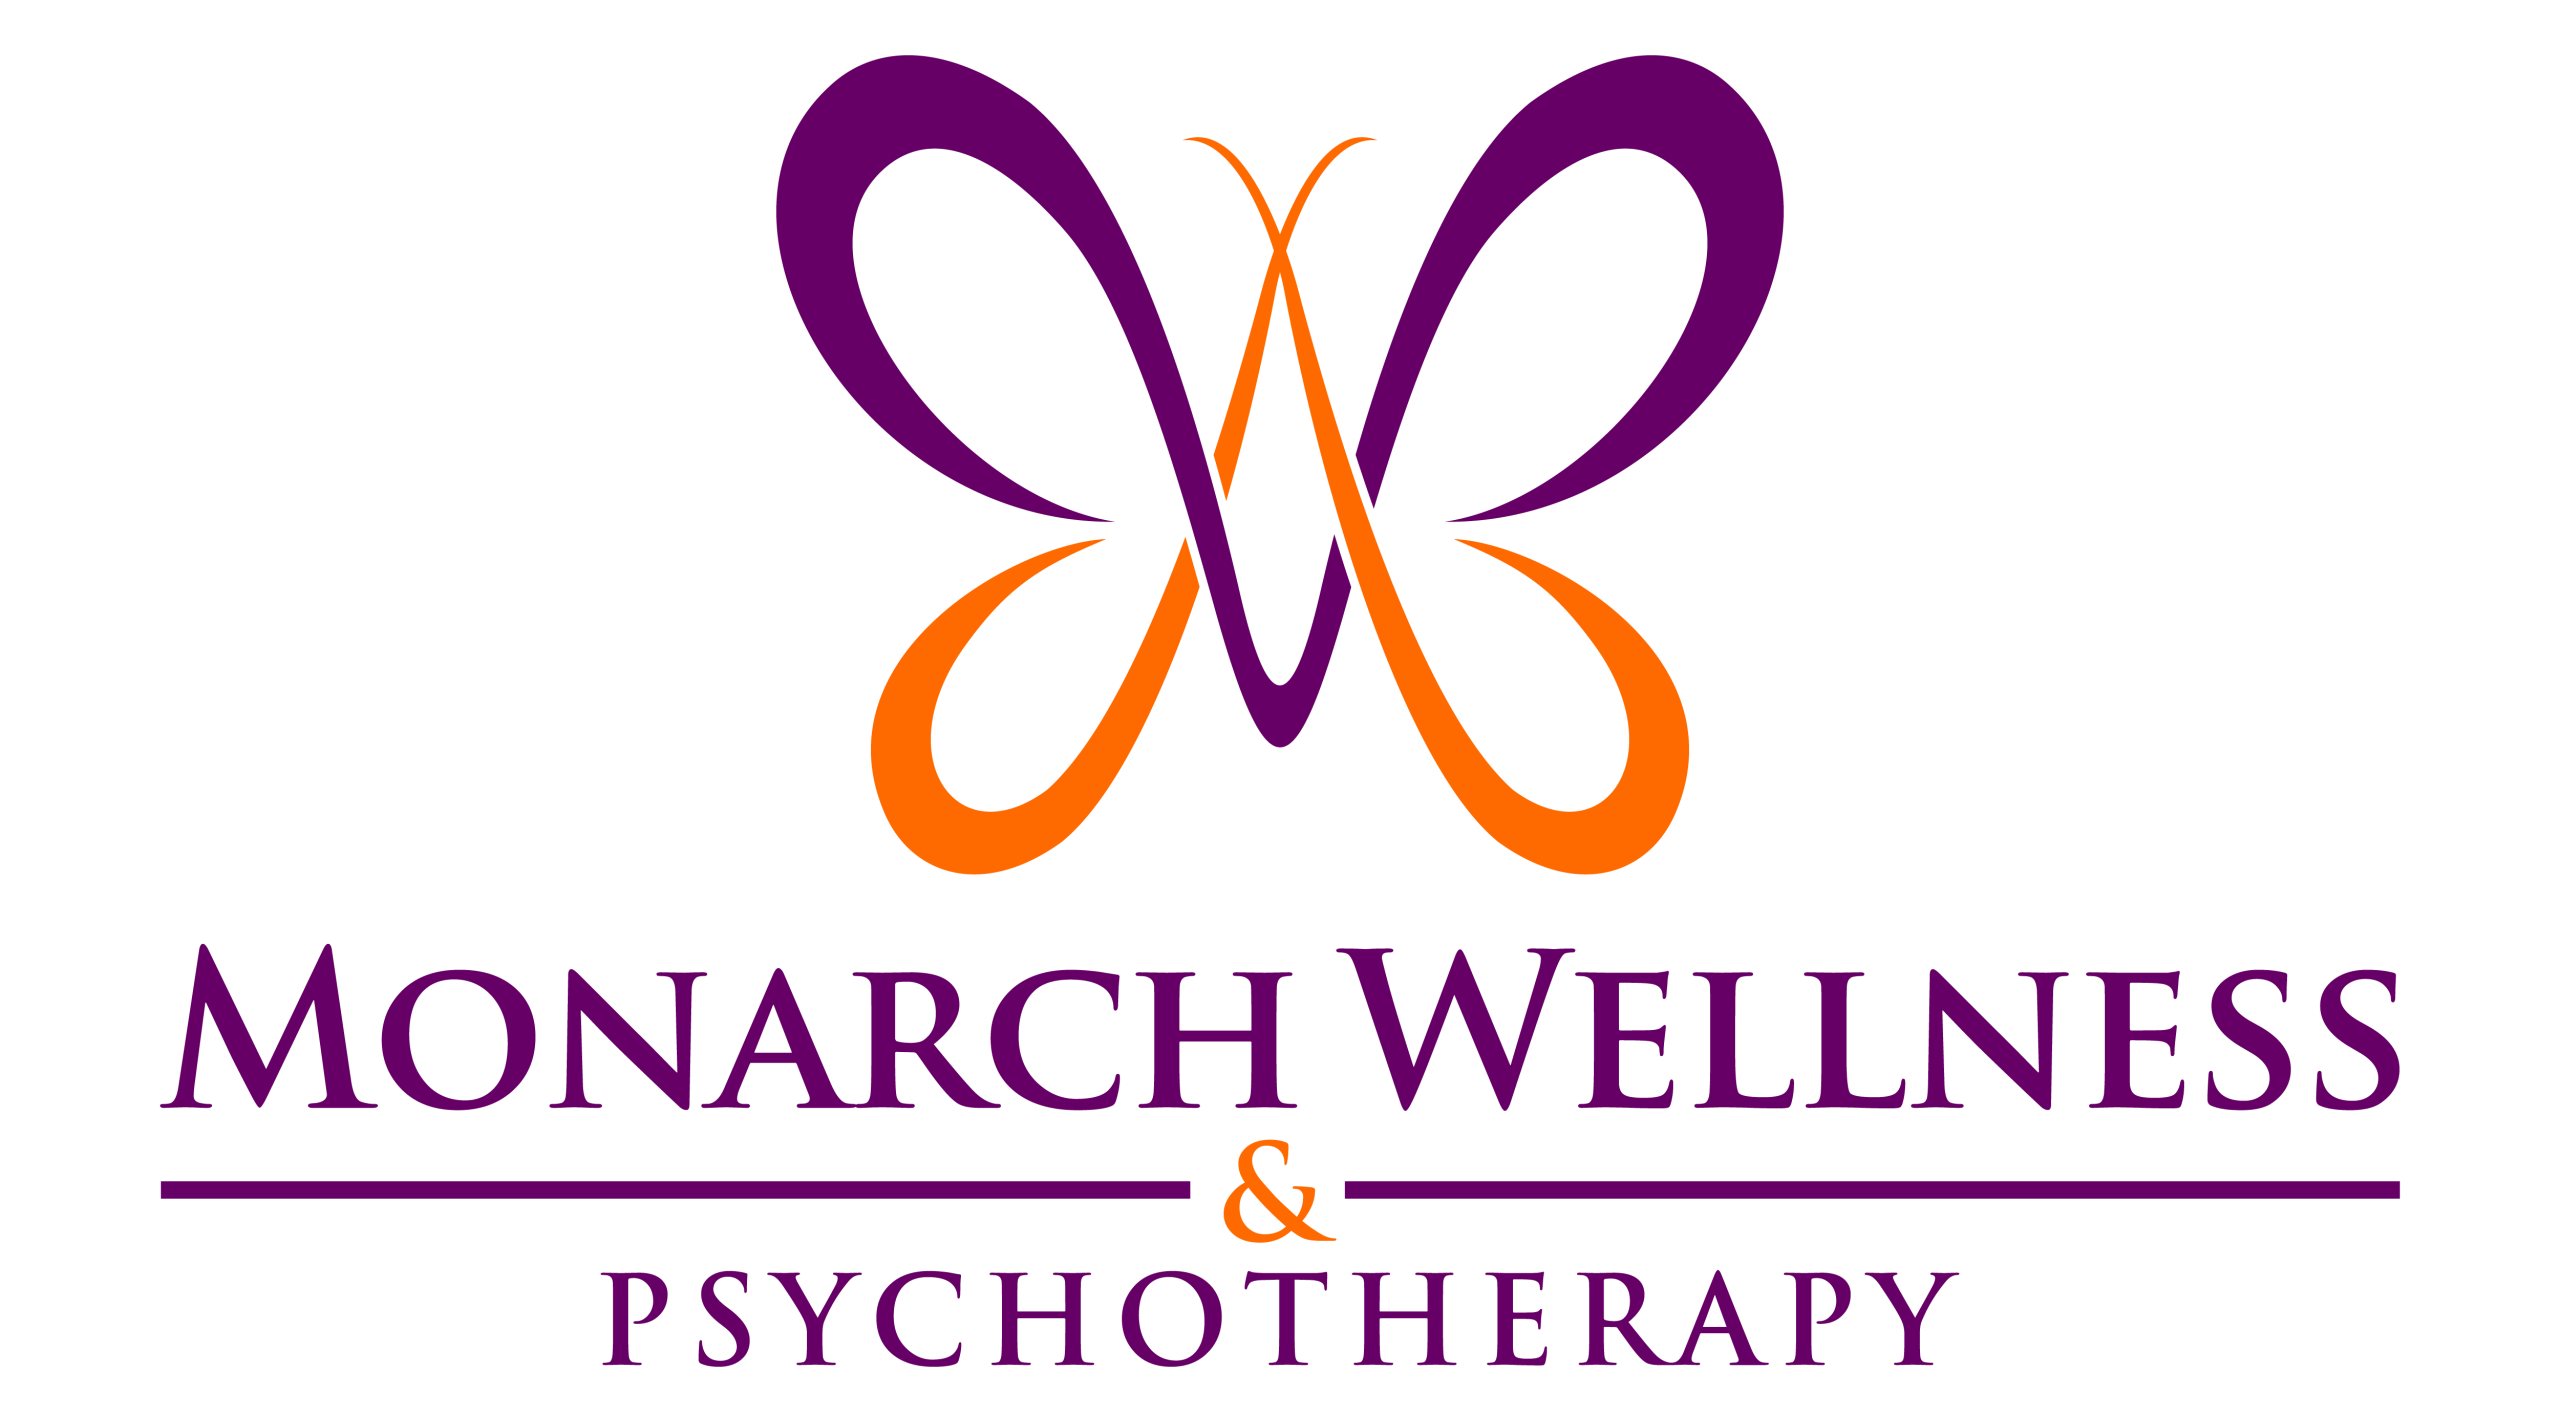 Monarch Wellness & Psychotherapy